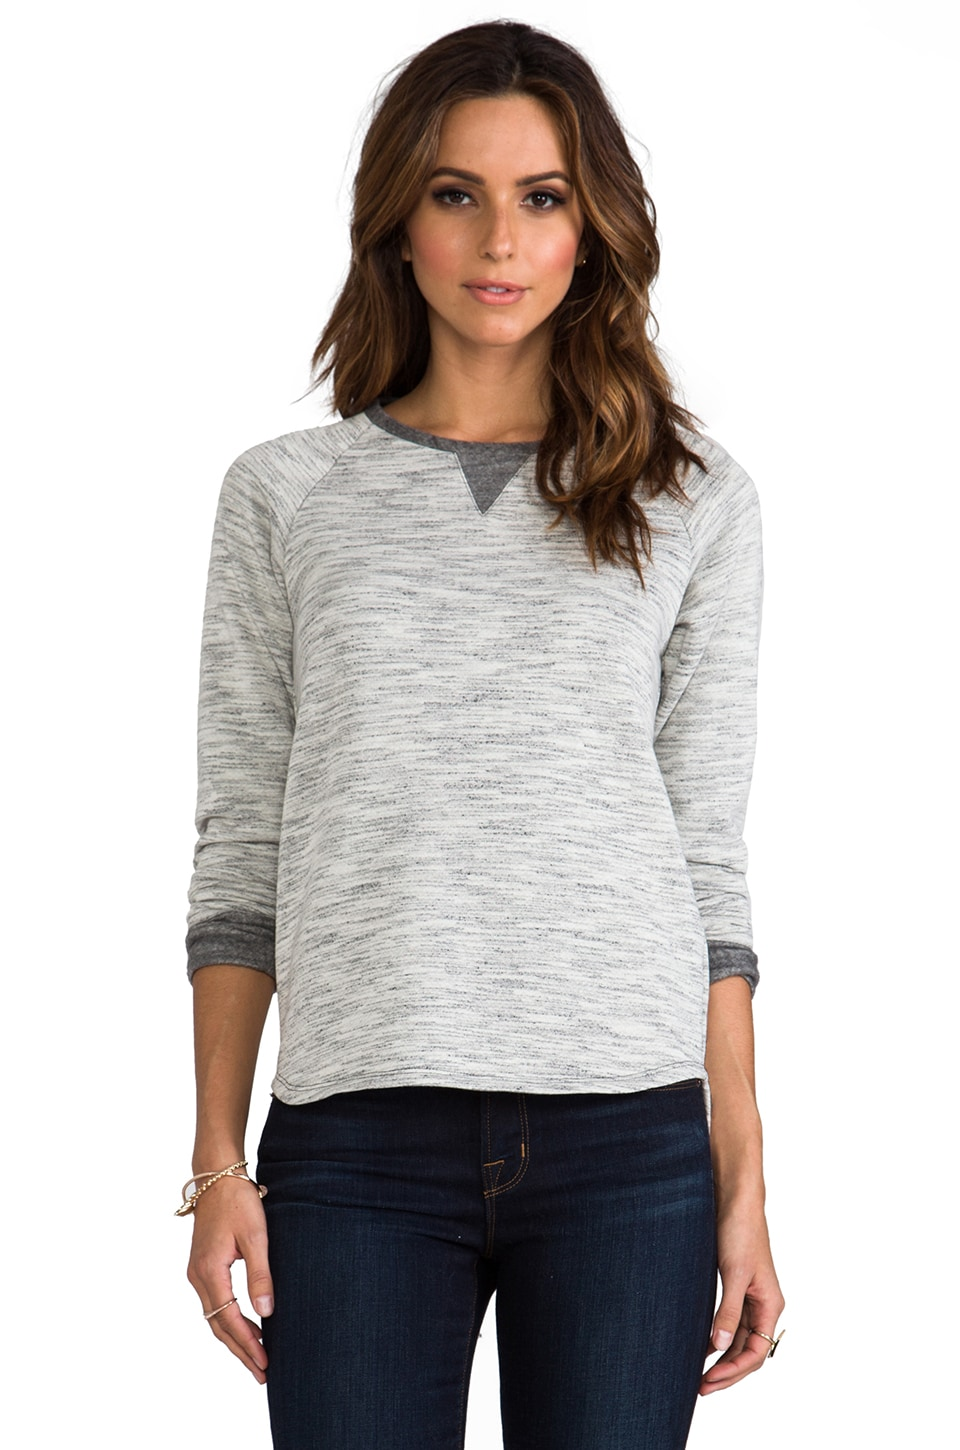 Whetherly Space Dye Jade Long Sleeve in Grey/Creme